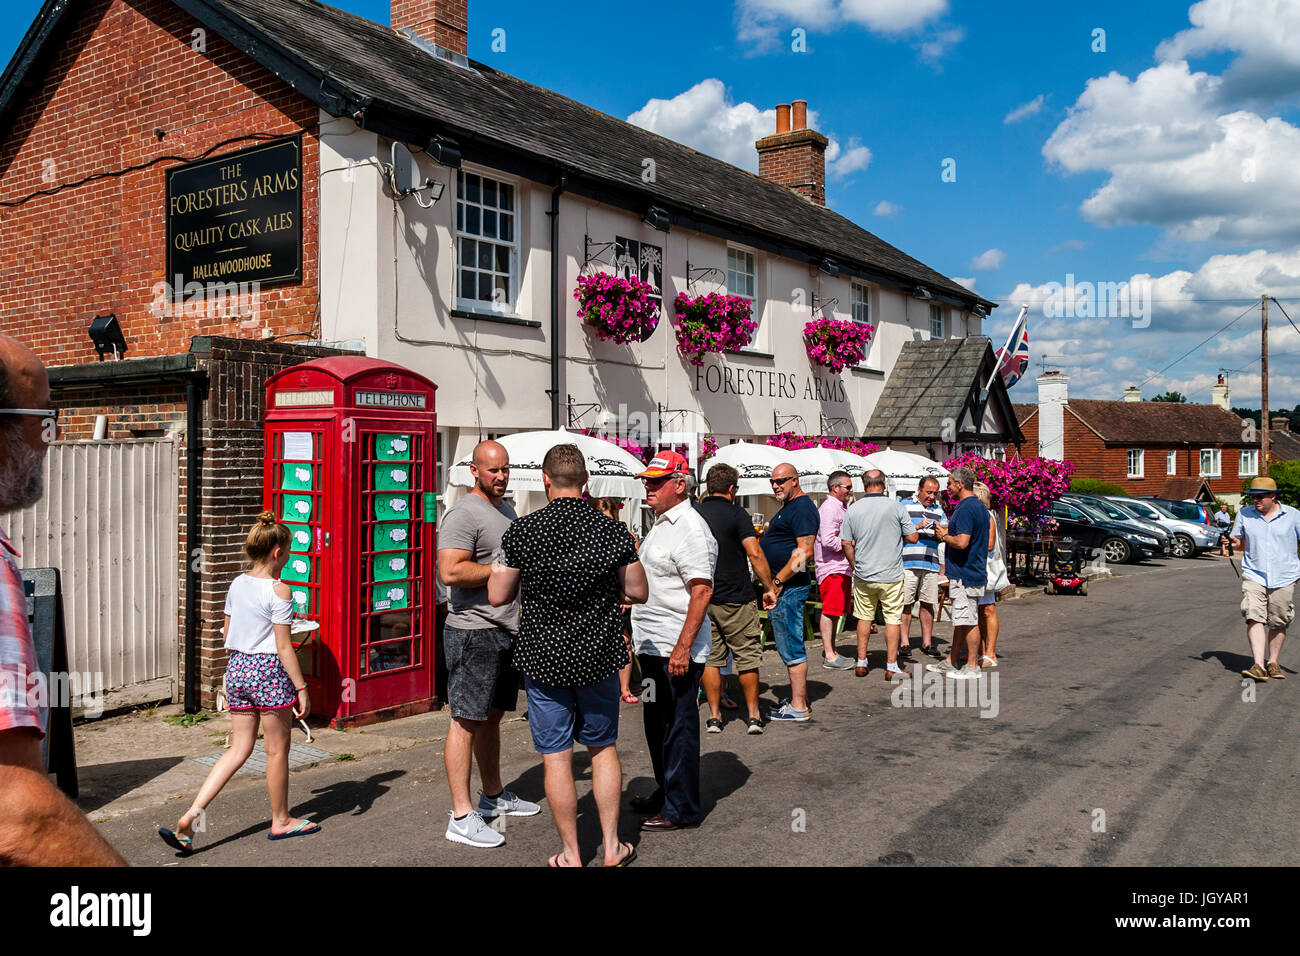 People Drinking Outside The Foresters Arms Pub, Fairwarp, East Sussex, UK - Stock Image